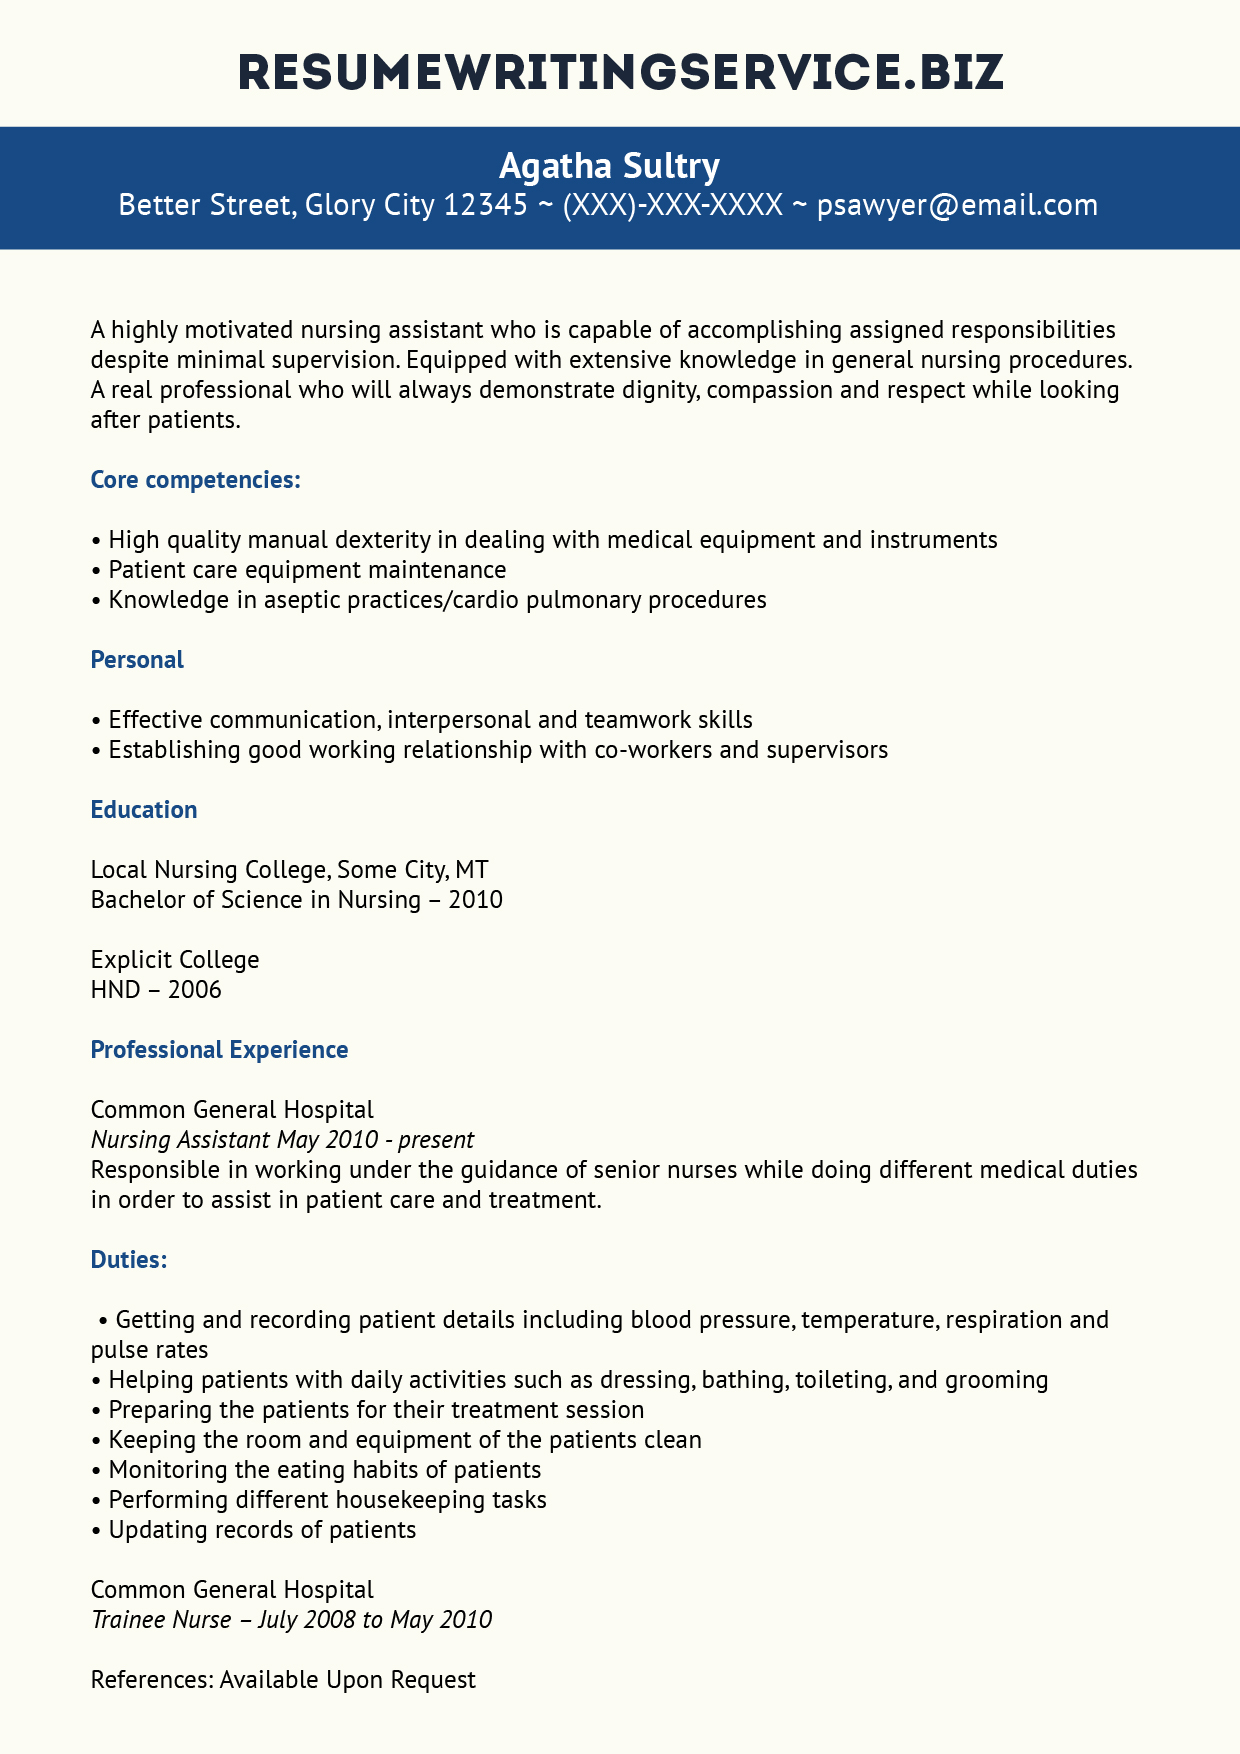 professional nursing assistant resume example resume writing service